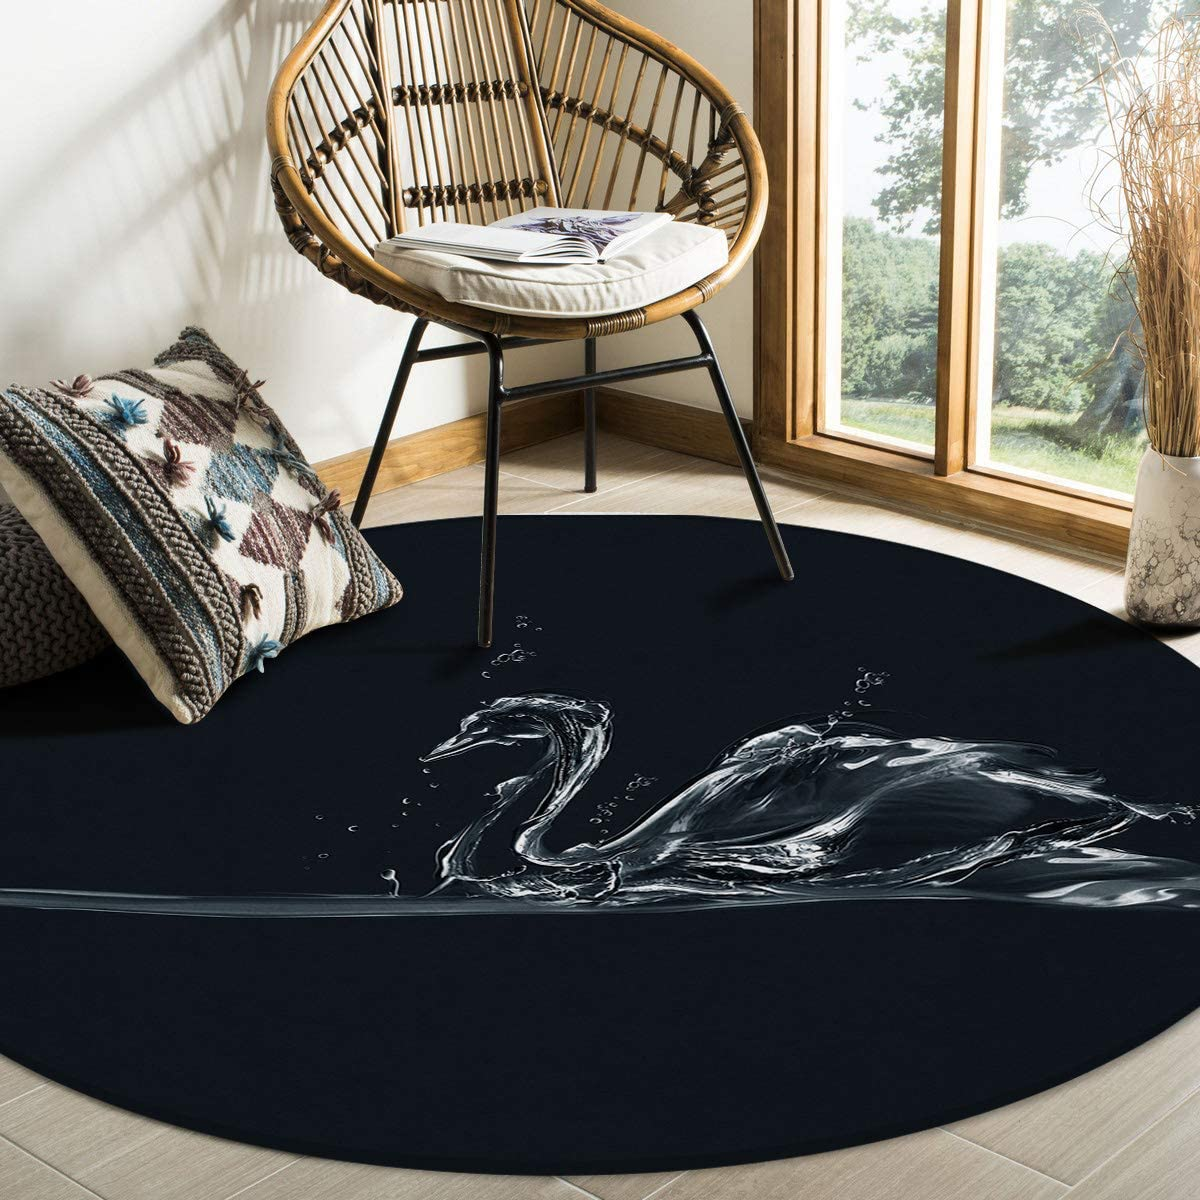 HELLOWINK Round Area Rugs 4ft Swan Black Free shipping anywhere in the nation Sale Res Stain Non-Shedding